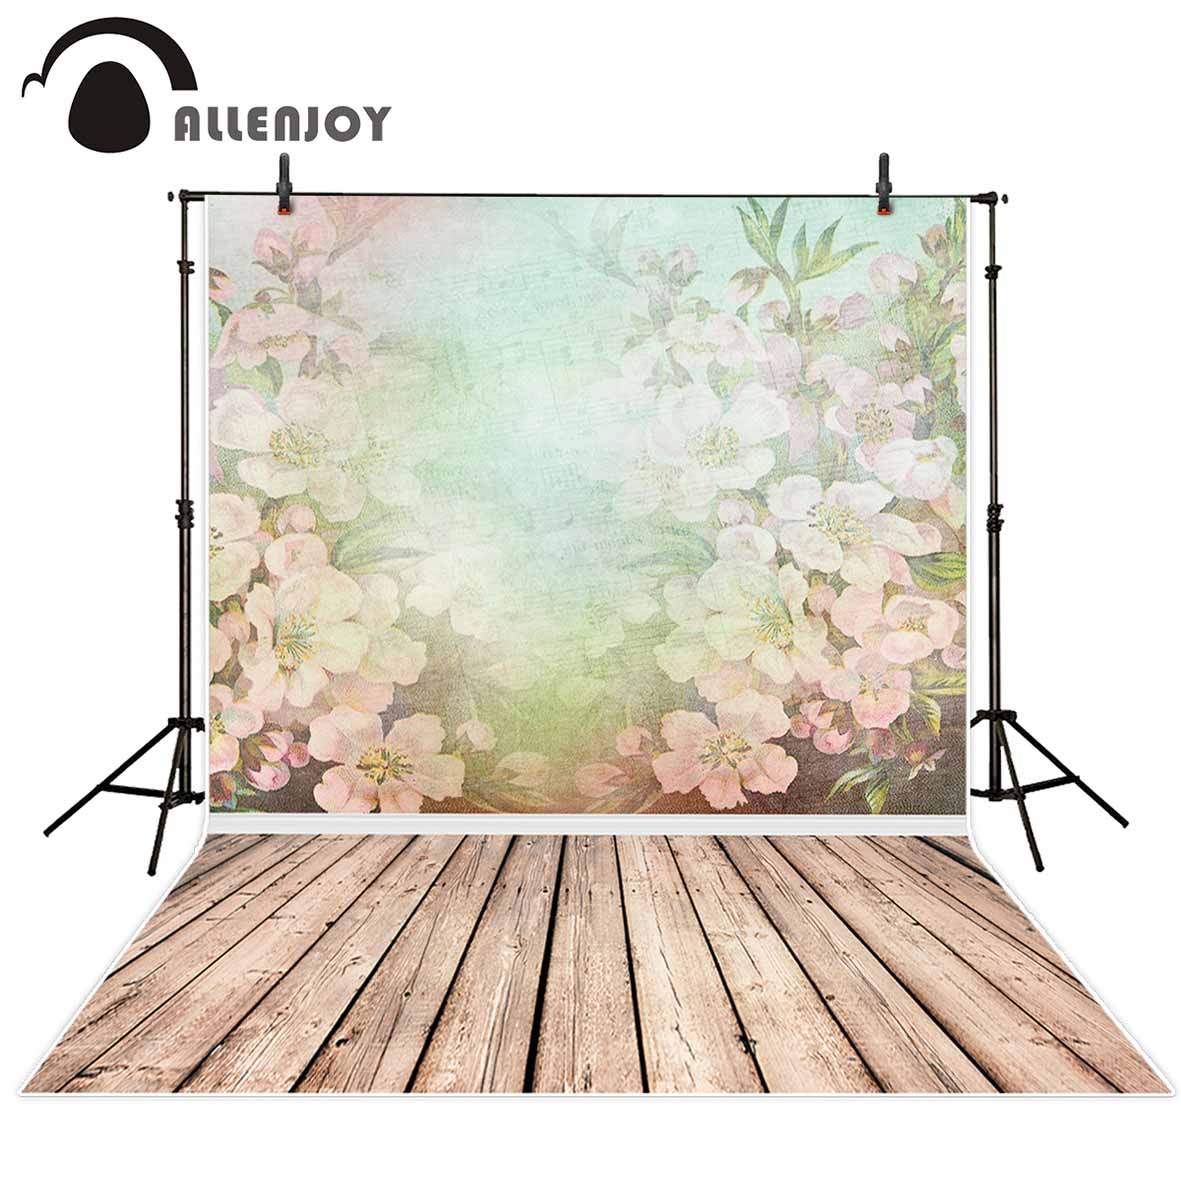 Allenjoy vinyl photographic background Flower wallpaper dreamy girl portrait new backdrop photocall photo printer customize